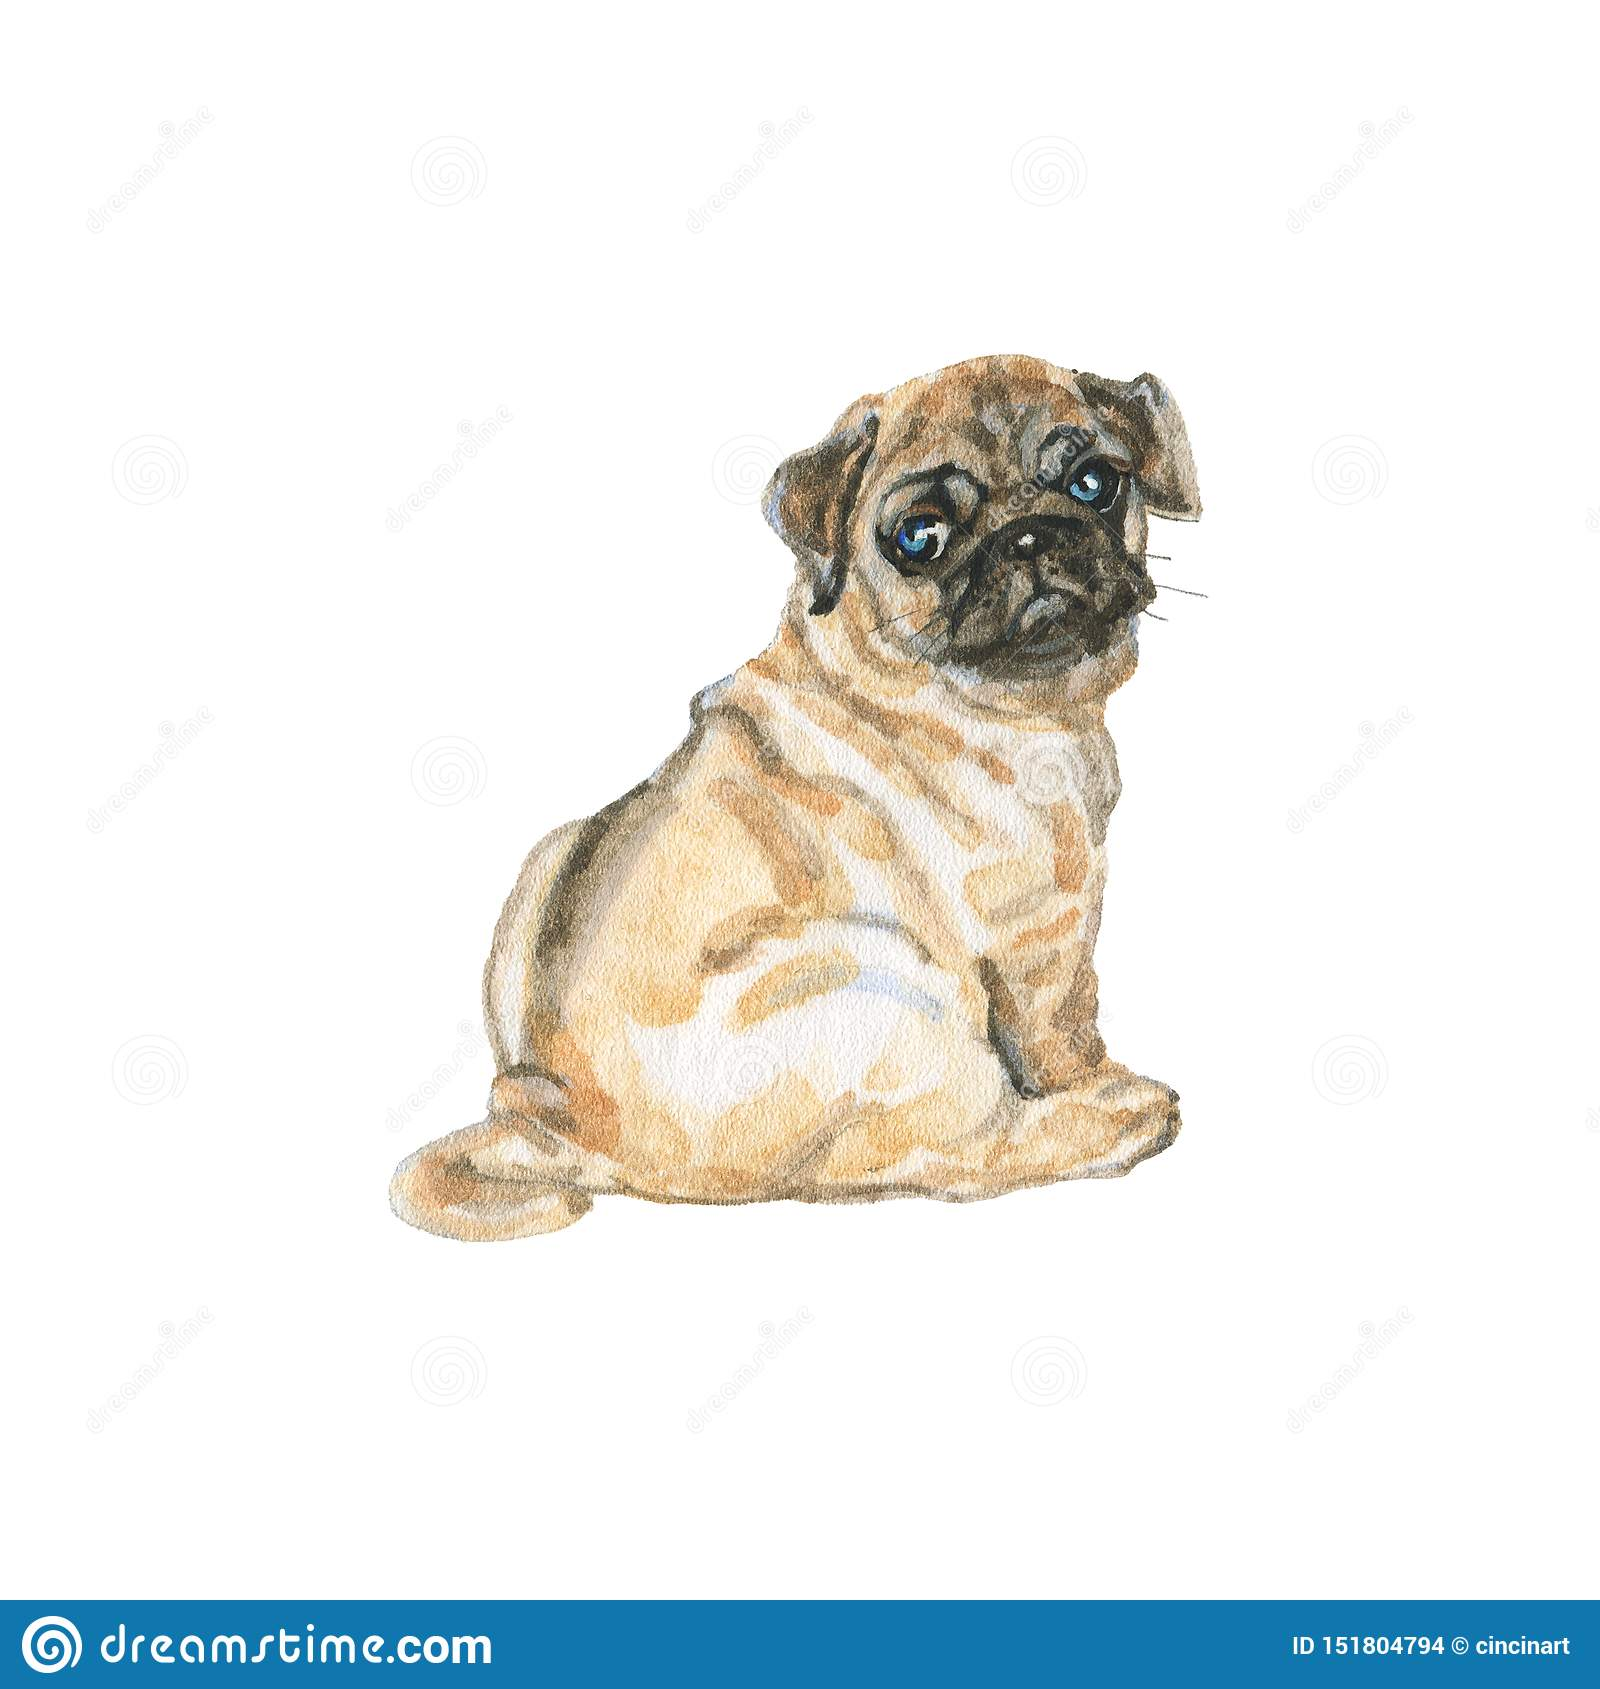 Pug 10x15 FT Photography Backdrop Detailed Portrait Drawing of a Dog Realistic Design of The Pet Animal Digital Art Background for Baby Birthday Party Wedding Vinyl Studio Props Photography